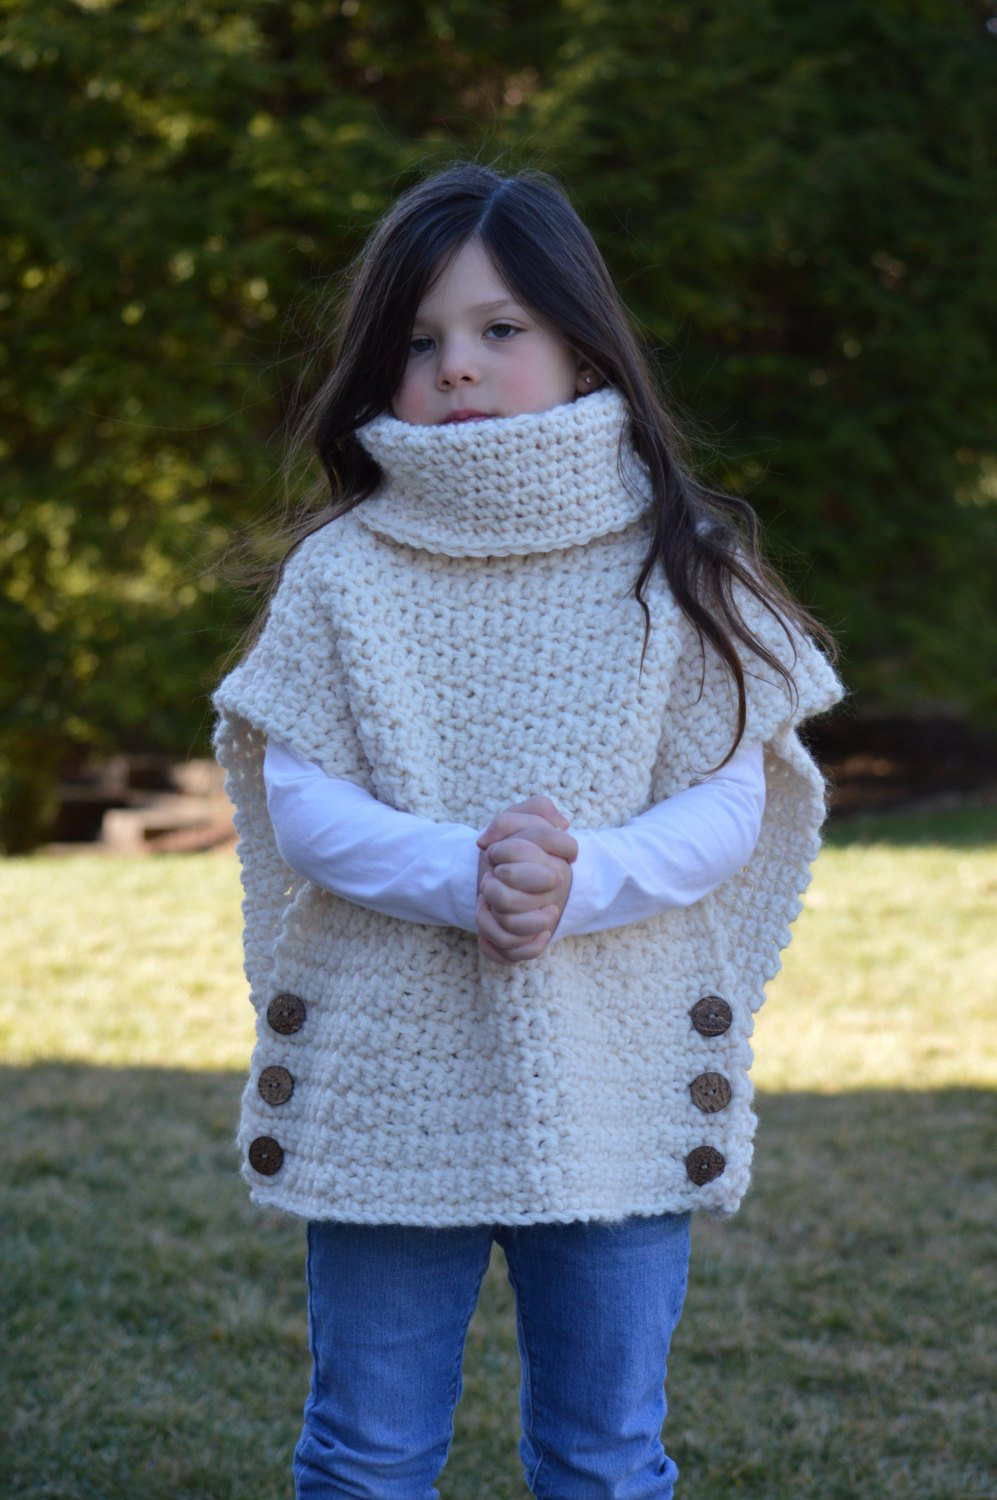 Crochet Pullover Sweater Lovely Crochet Pullover Sweater with Cowl Neck and button Closure Of Delightful 48 Pics Crochet Pullover Sweater